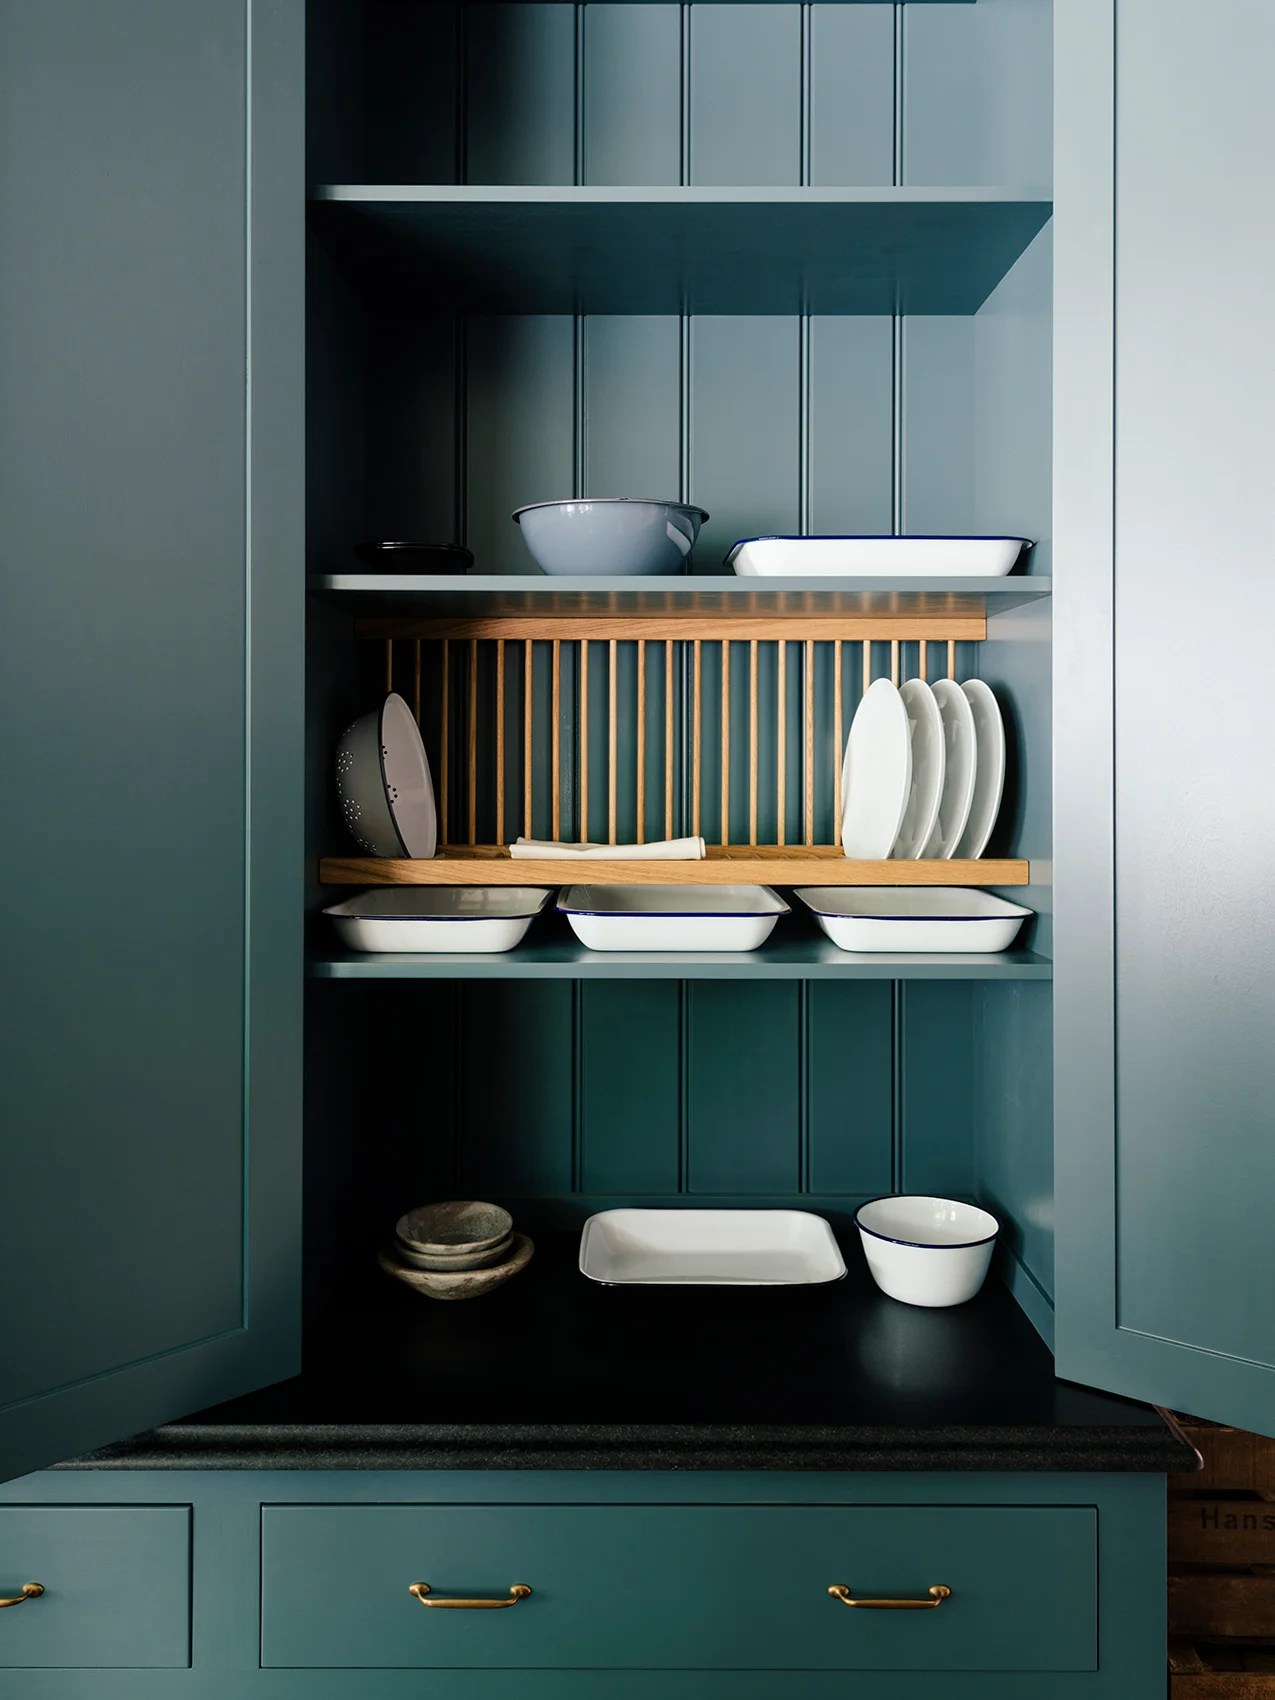 plate rack will take the open shelving